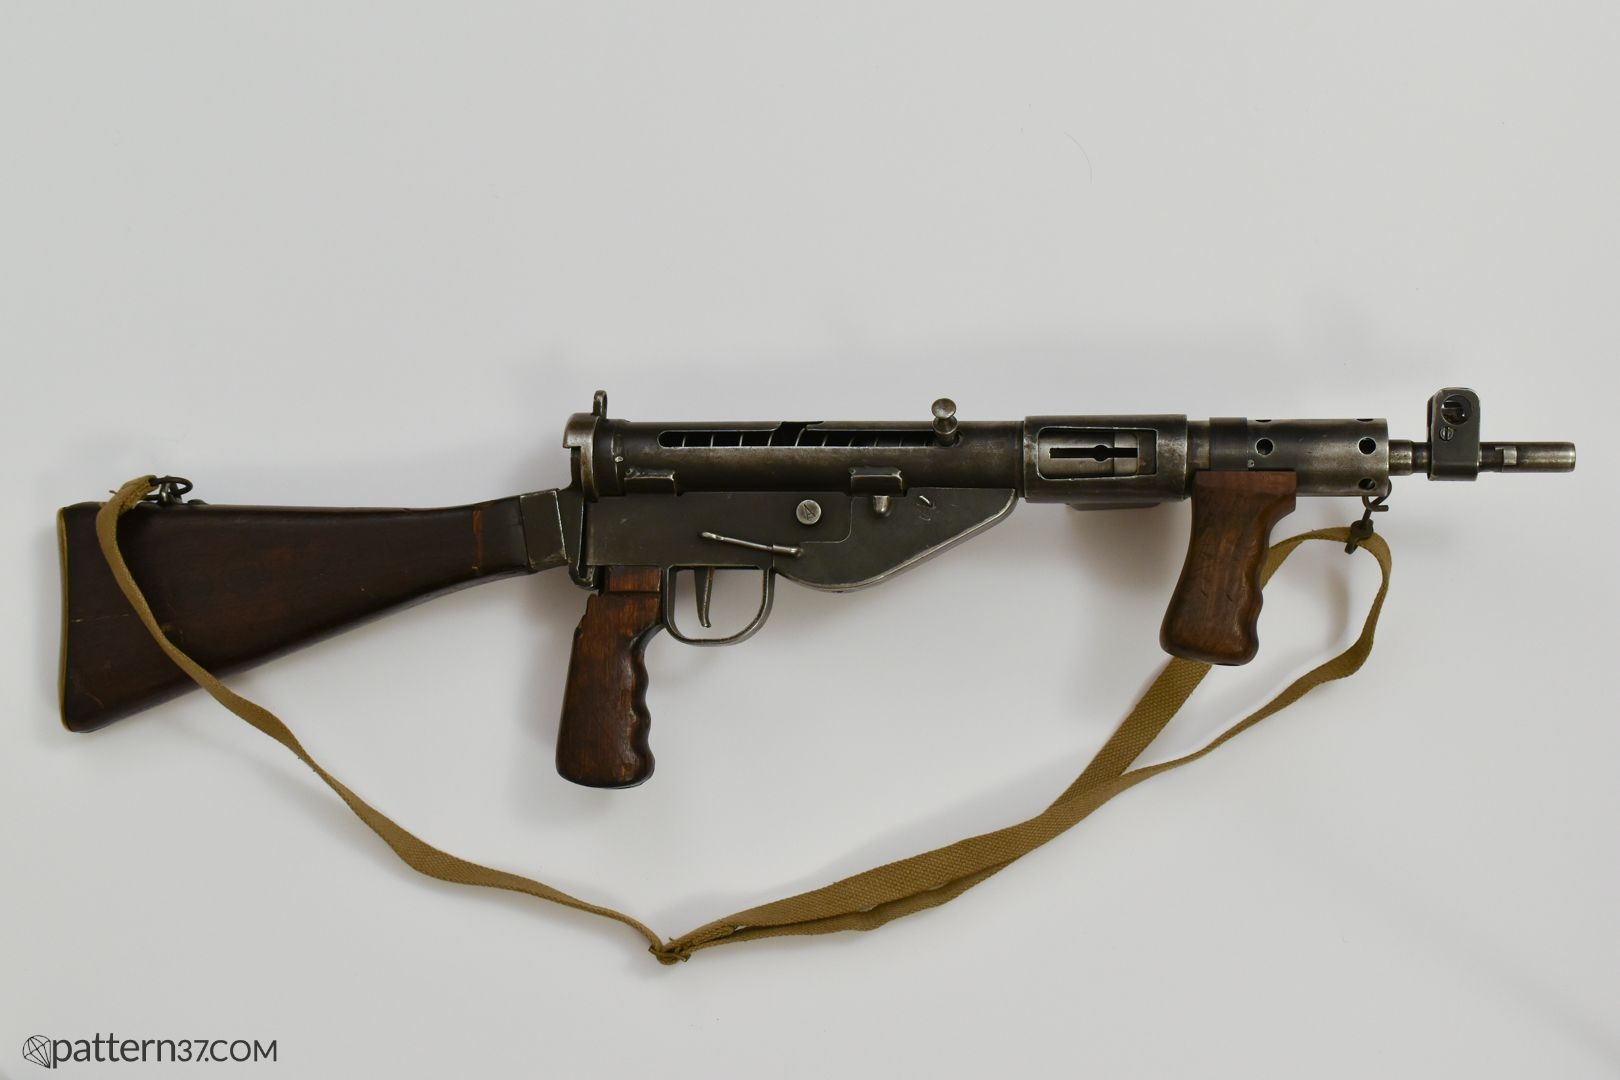 23+ Sten pistol ideas in 2021